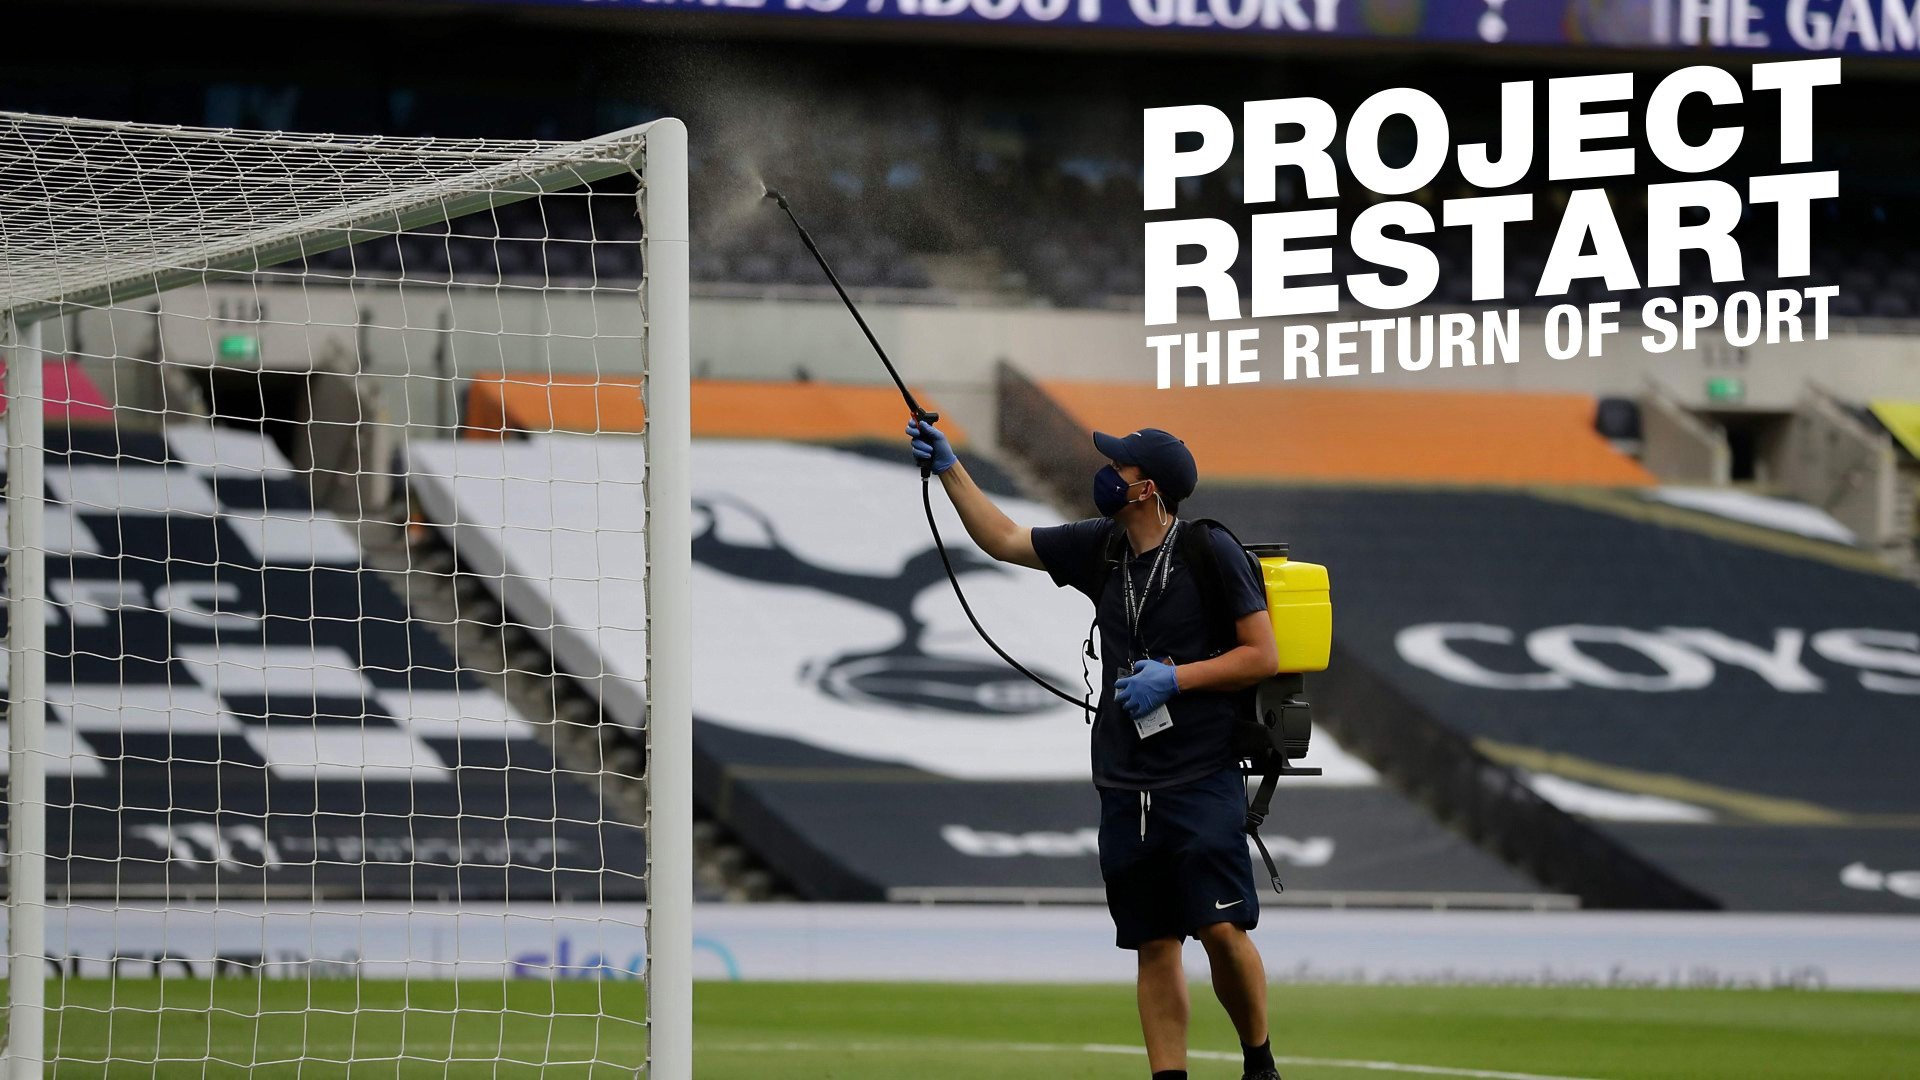 Project Restart: The Return of Sport